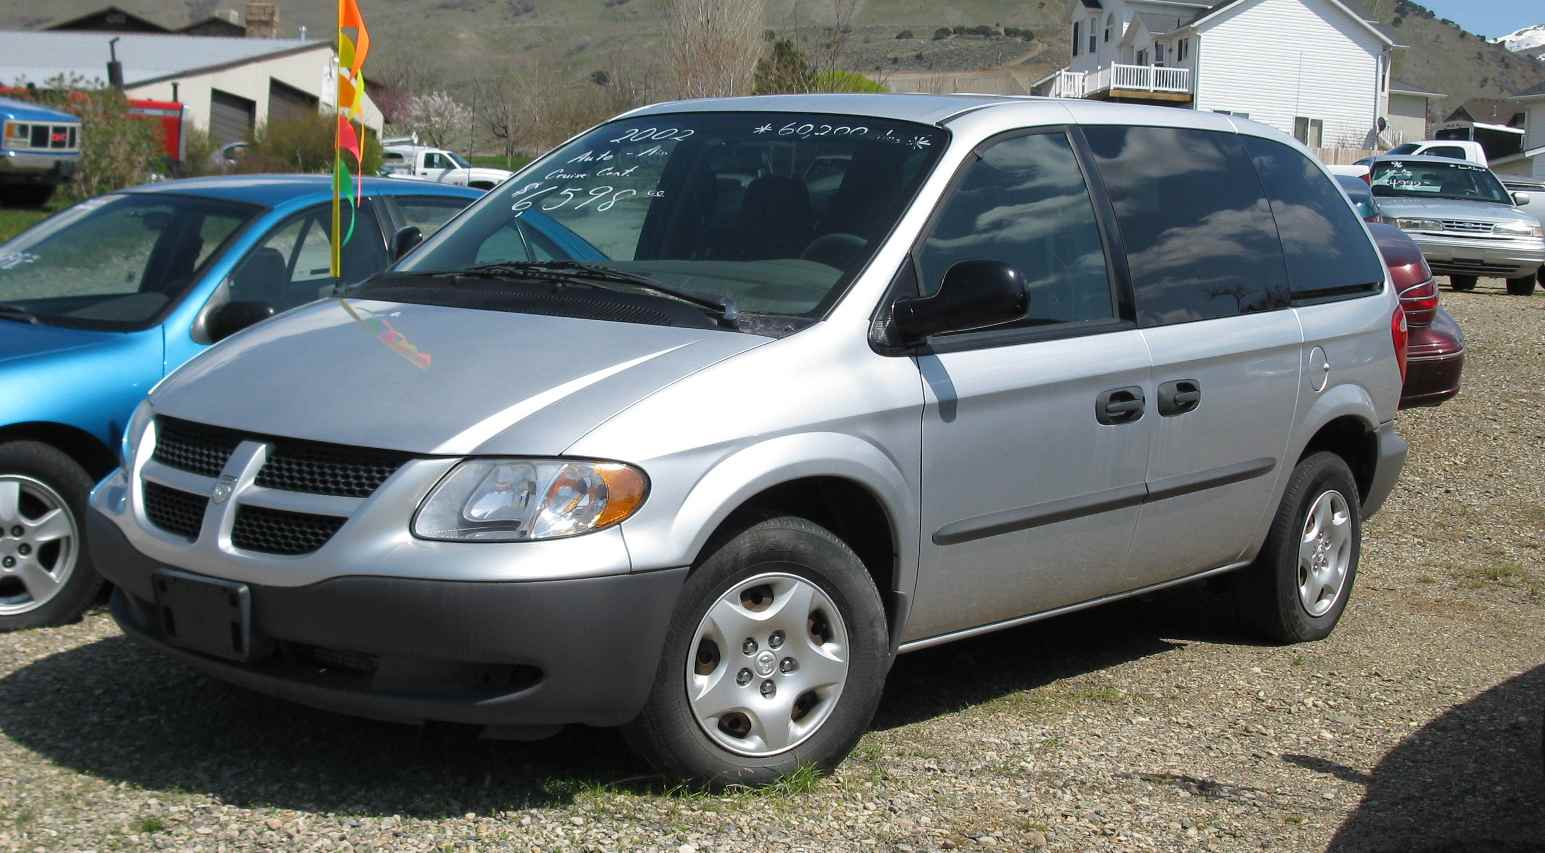 2002 Dodge Grand Caravan SE VIN Number Search - AutoDetective on 2005 dodge caravan blower motor diagram, 2003 dodge caravan cooling system diagram, 02 dodge caravan transmission, 2002 dodge trailer wiring diagram, dodge grand caravan engine diagram, dodge ram 1500 transmission diagram, 2002 dodge caravan transmission diagram, 02 subaru impreza wiring diagram, 02 gmc sierra wiring diagram, 02 chevy venture wiring diagram, 02 mazda tribute wiring diagram, 02 ford f350 wiring diagram, 02 nissan xterra wiring diagram, dodge caravan parts diagram, 02 mazda 626 wiring diagram, 02 toyota celica wiring diagram, 02 dodge caravan steering, 02 bmw x5 wiring diagram, 02 jeep grand cherokee wiring diagram, 02 chrysler town and country wiring diagram,